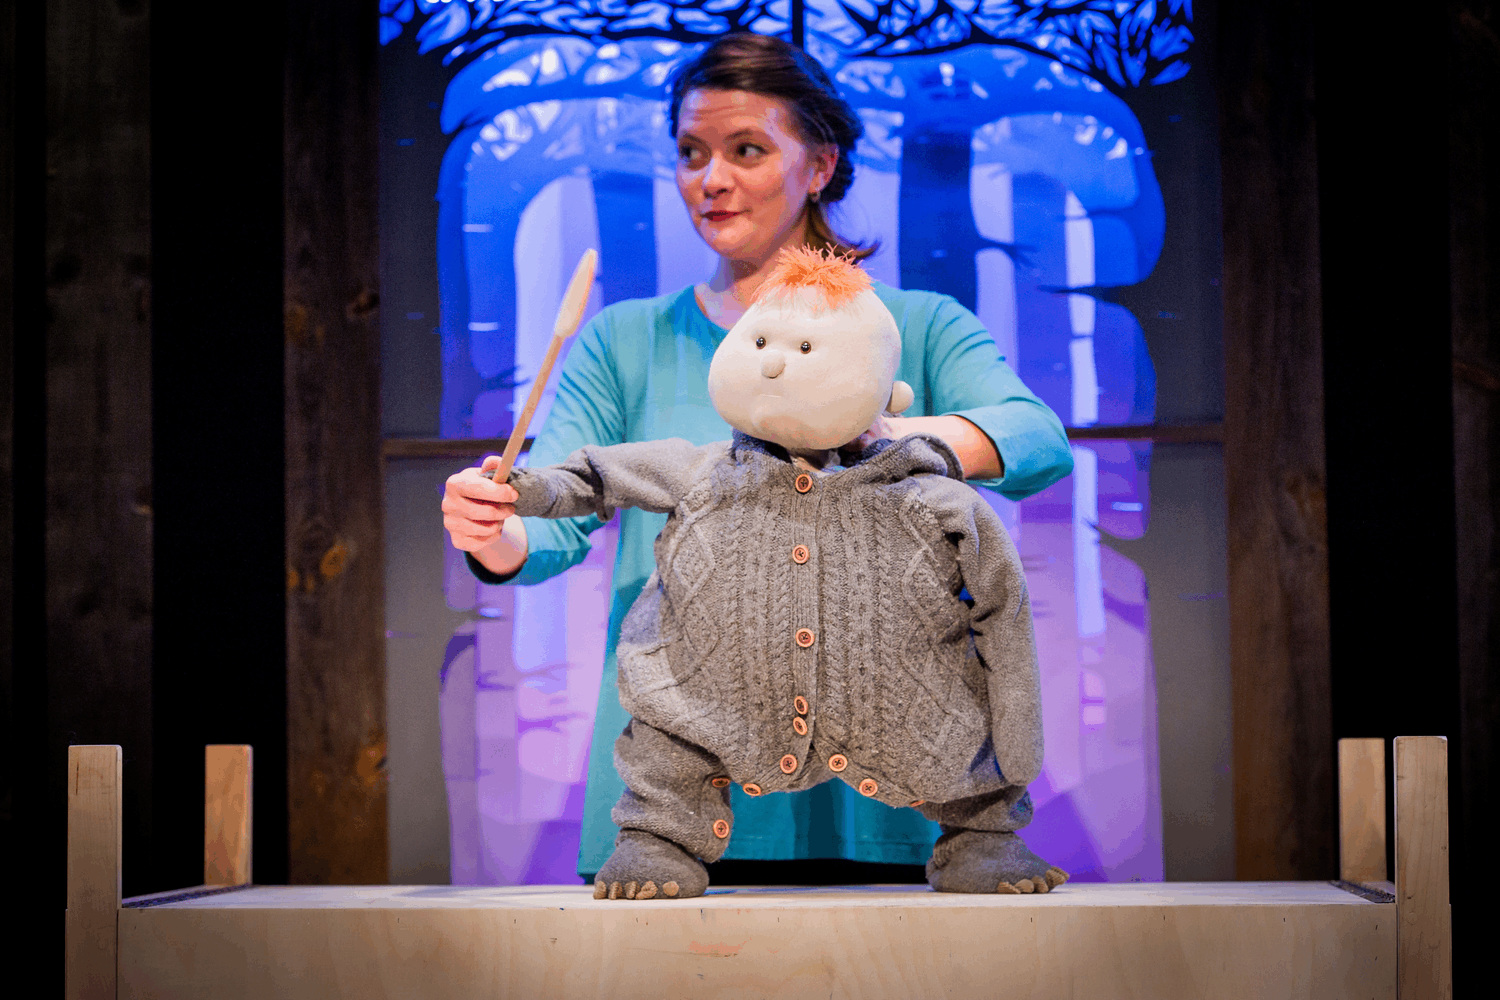 a puppeteer controls a puppet of a child, wearing a knitted baby grow, holds a wooden spoon as though conducting.